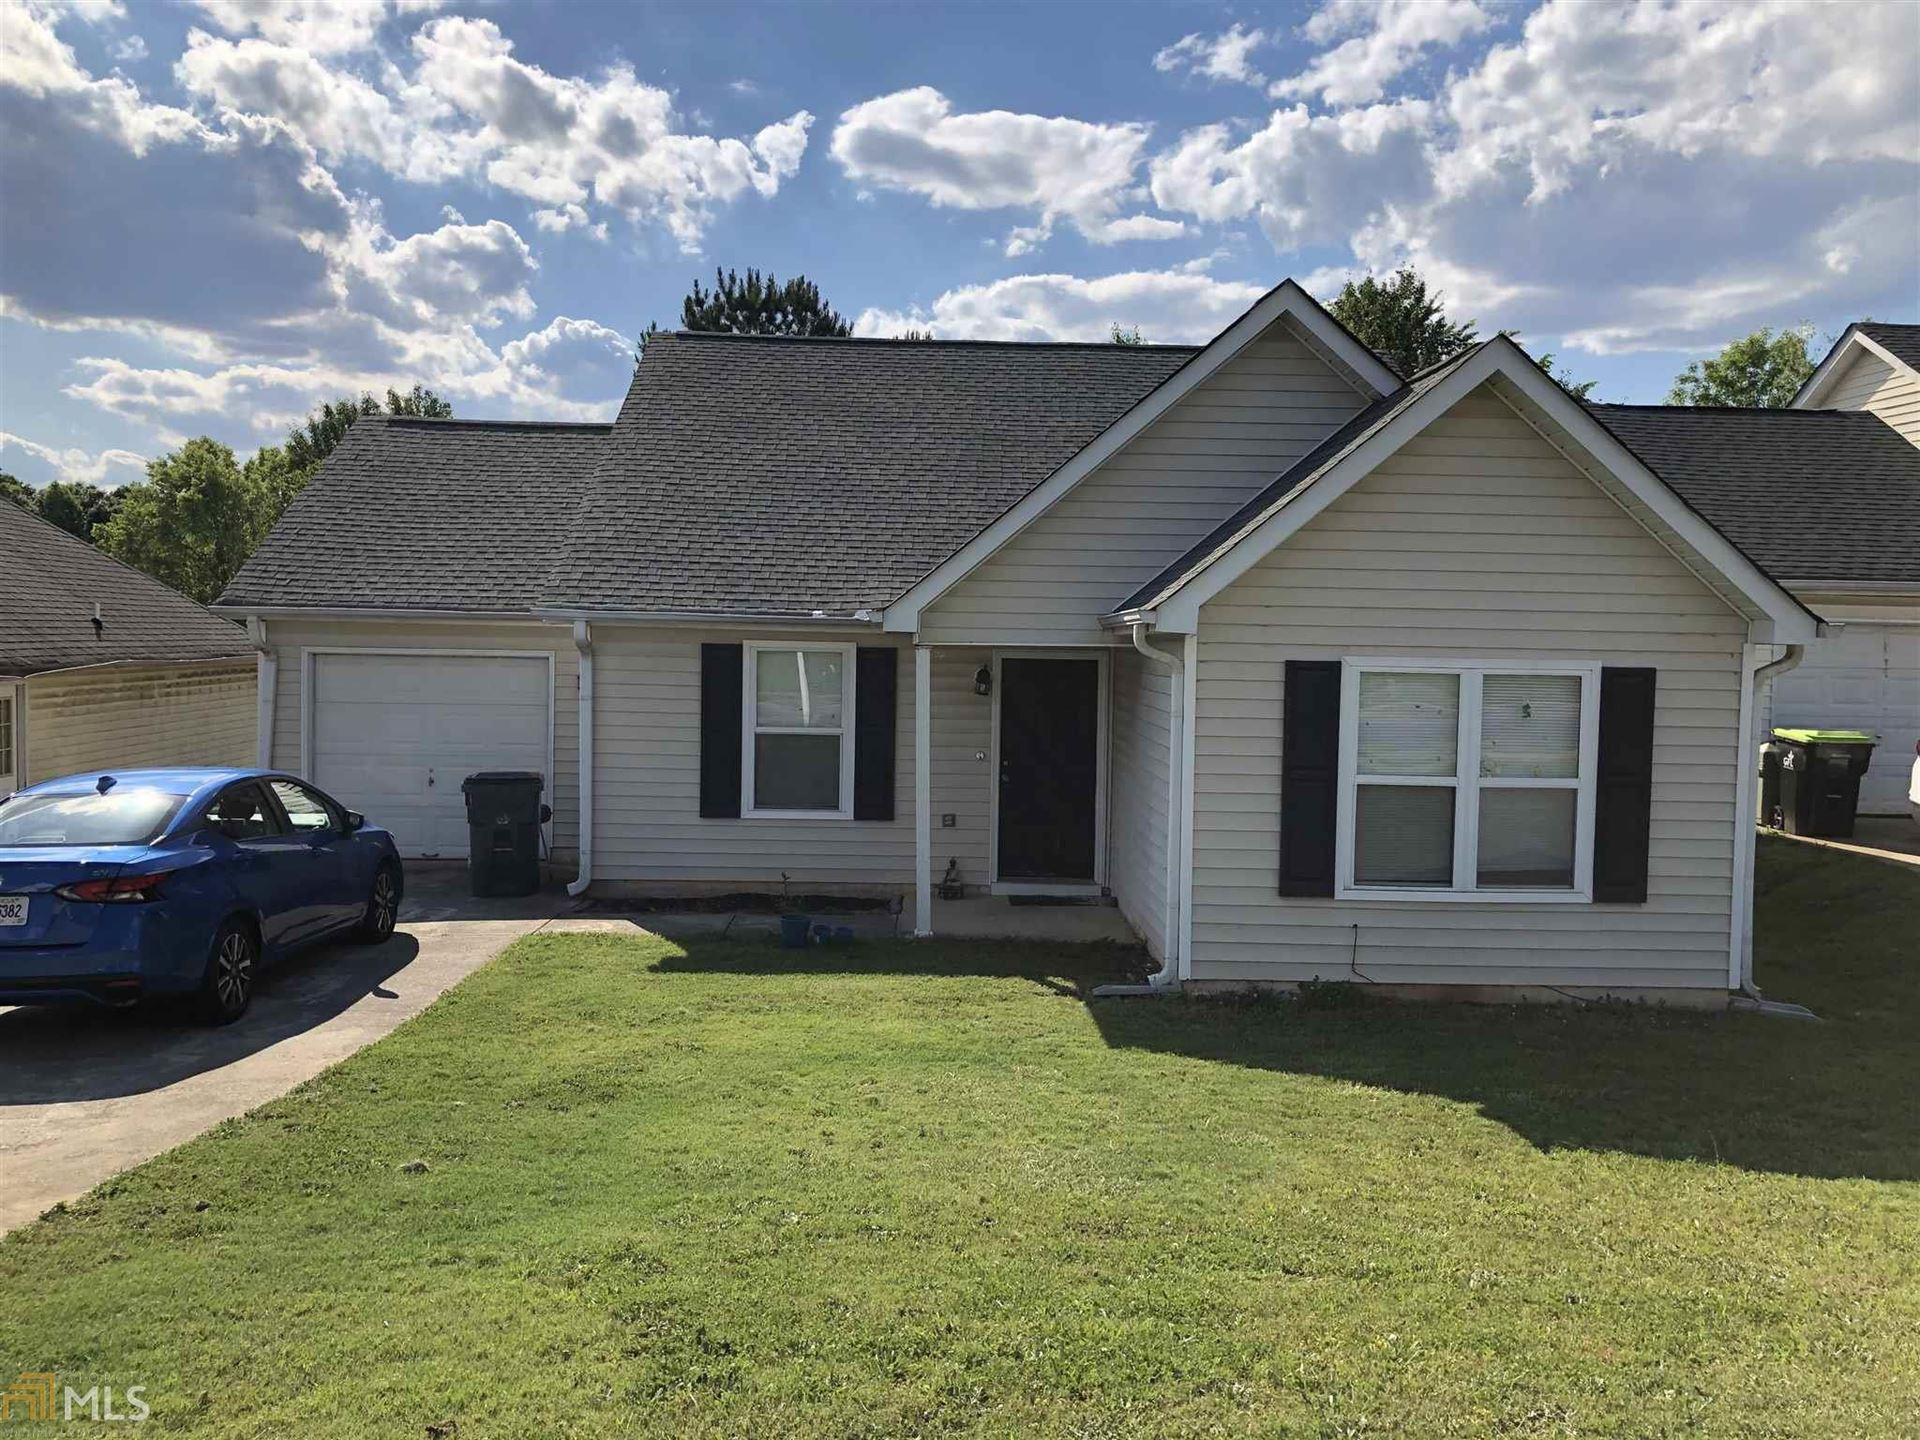 503 Kettletoft Ct, Stockbridge, GA 30281 - #: 8979228